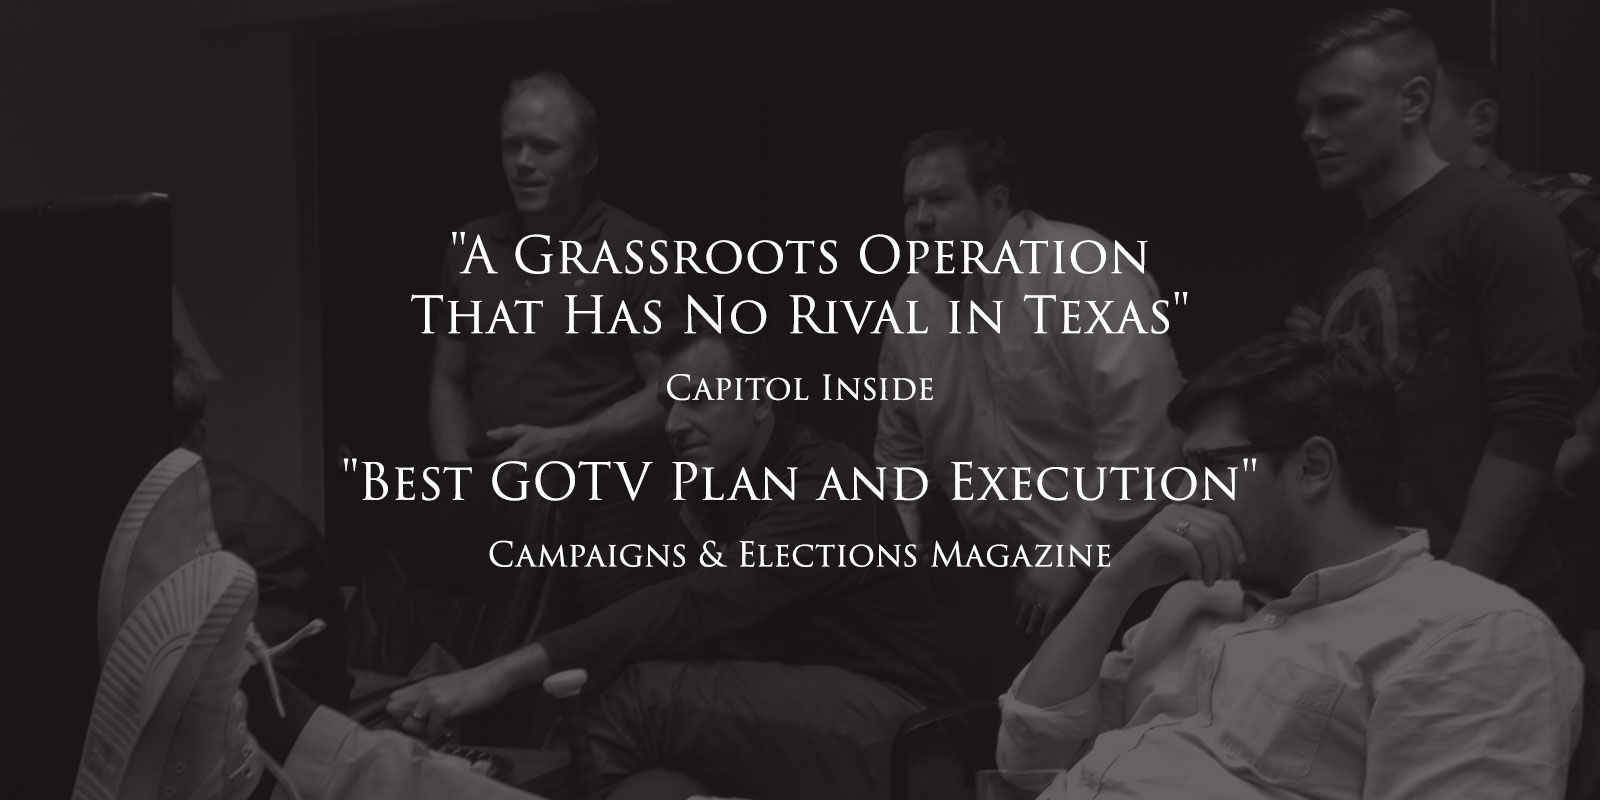 """A Grassroots Operation That Has No Rival in Texas"" and ""Best GOTV Plan and Execution"""